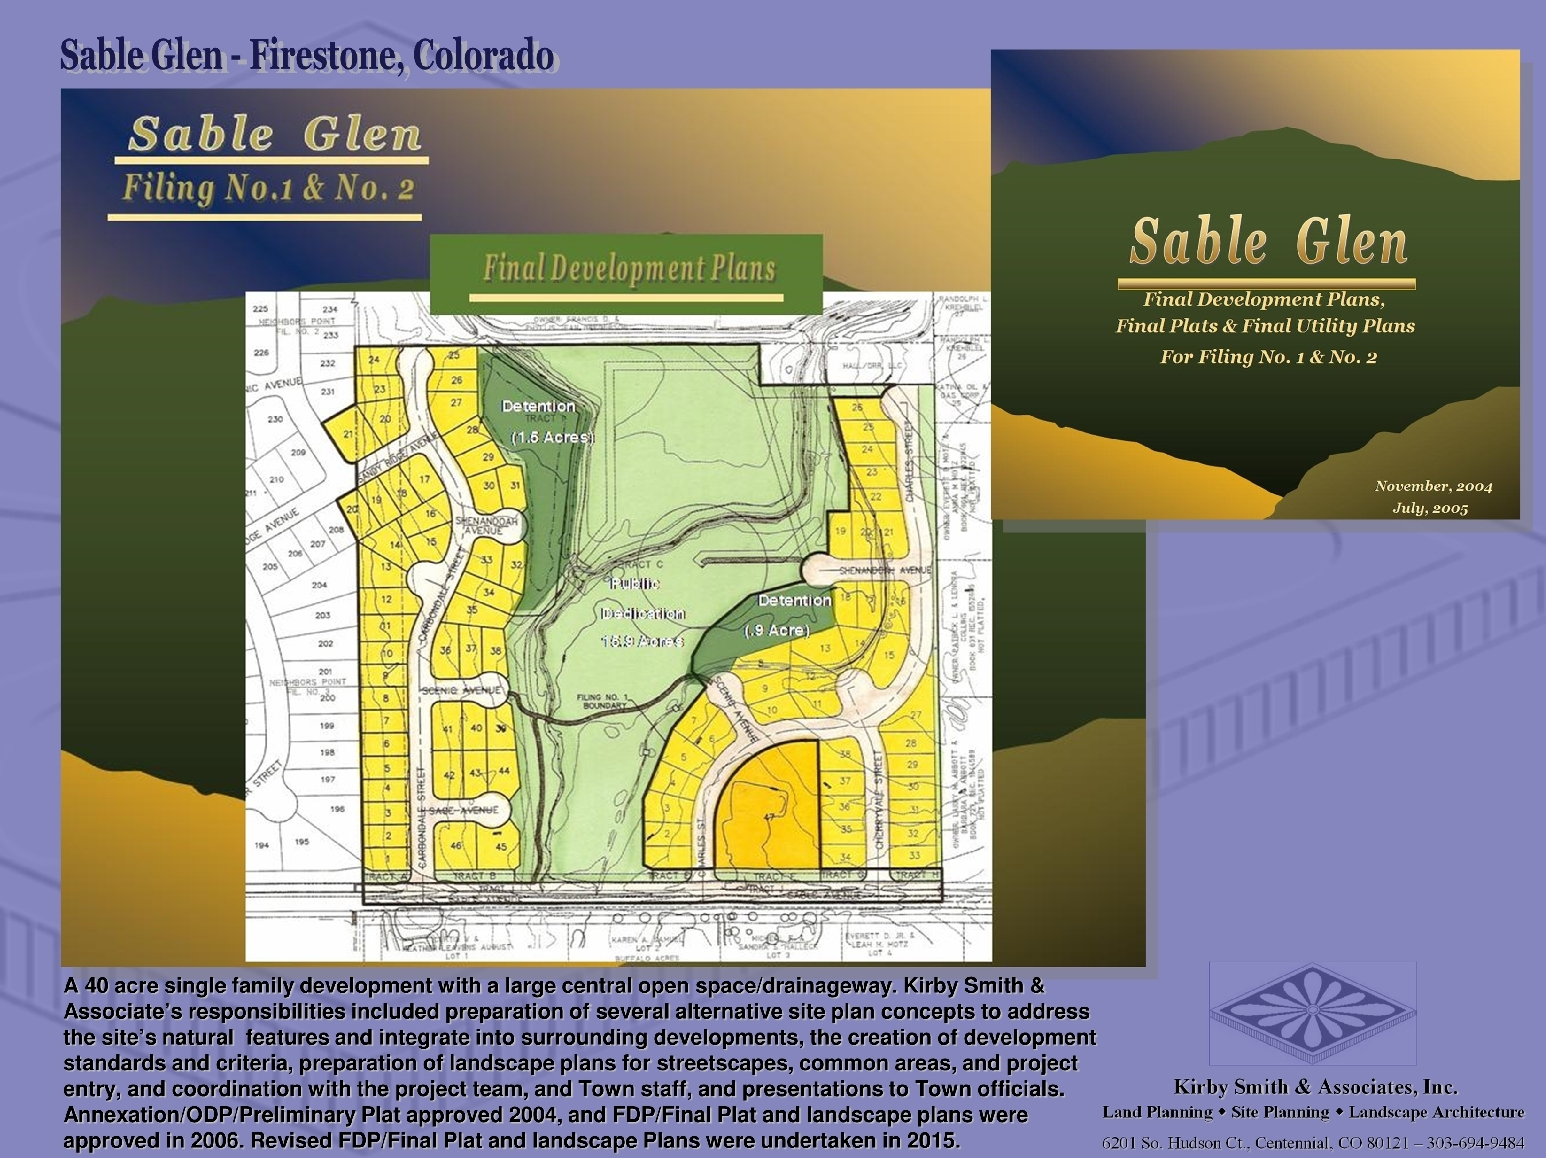 A 40 acre single family development with a large central open space/drainageway. Kirby Smith & Associate's responsibilities included preparation of several alternative site plan concepts to address the site's natural features, creation of development standards and criteria, preparation of landscape plans for streetscapes, common areas, and project entry. Revised FDP/Final Plat and Landscape Plans are currently being undertaken.